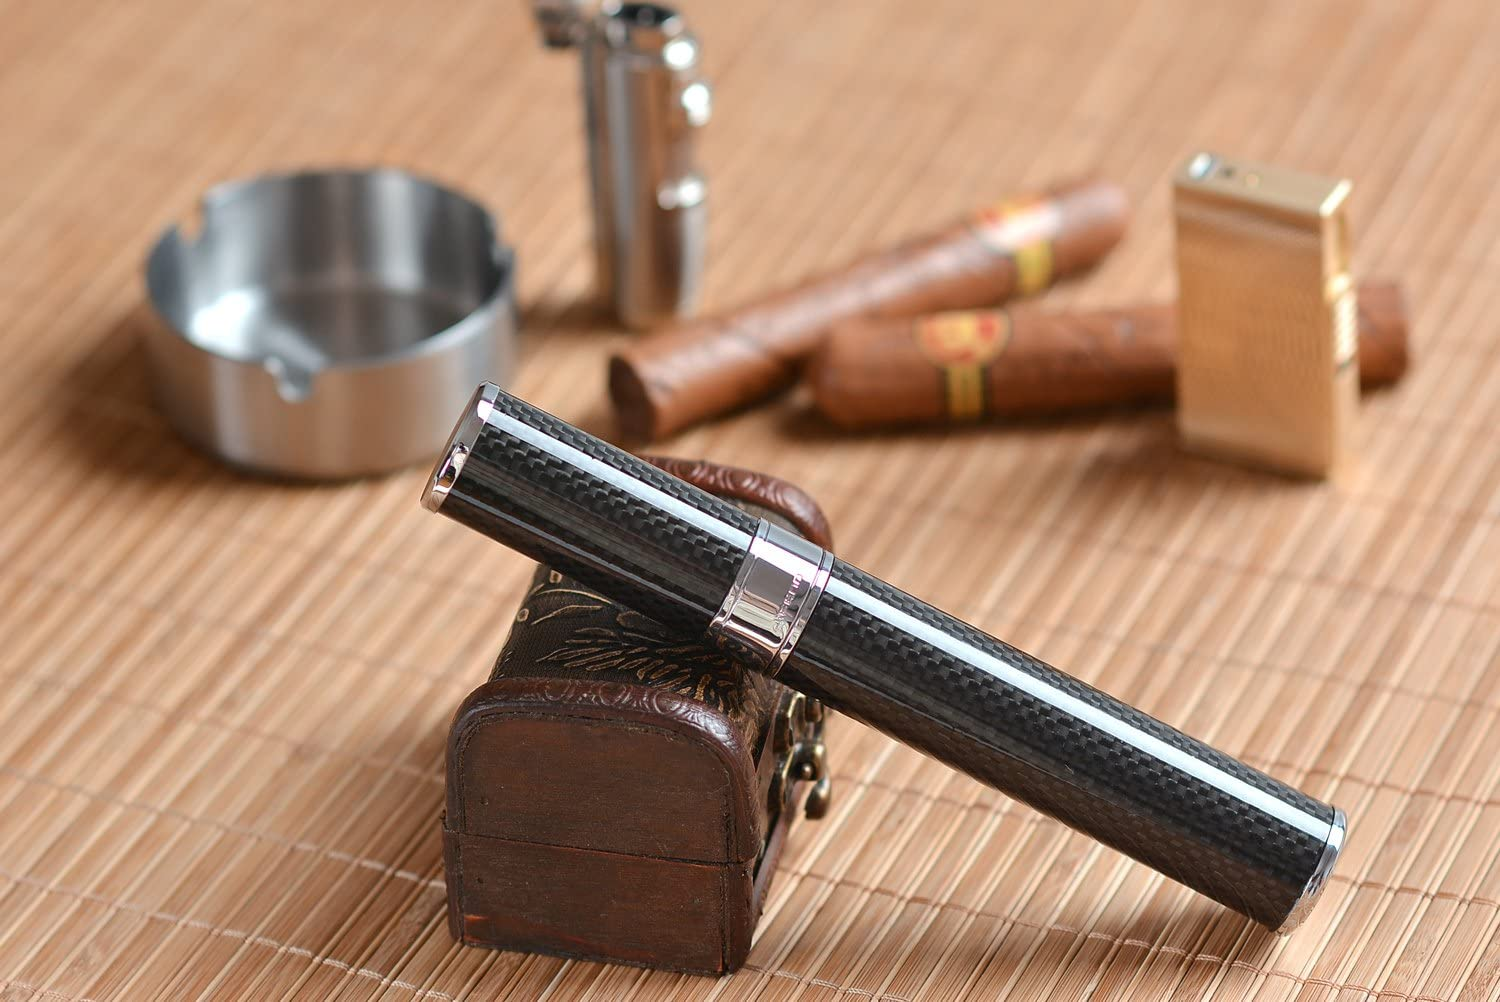 UK 5315-01 18cm x 2,5cm Mod The Khan Outdoor /& Lifestyle Company Cigar Travel Tube made of stainless steel black 7.09 x 0.98